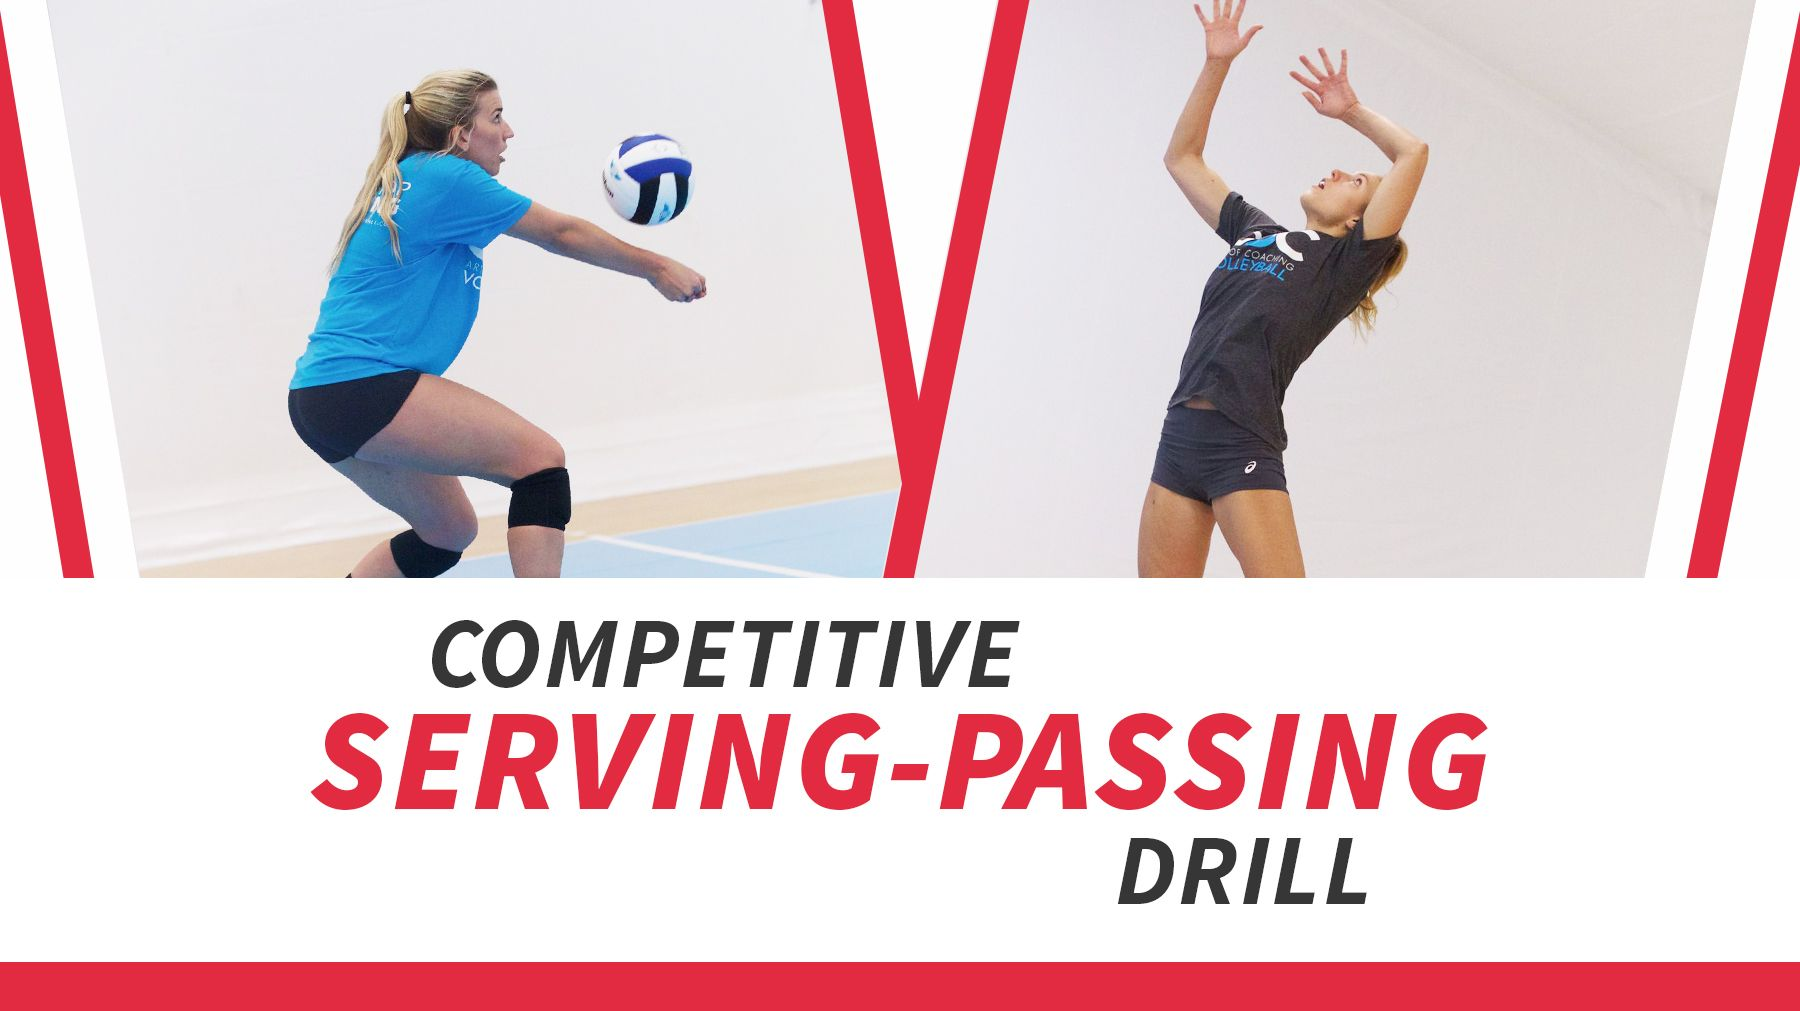 Competitive Serving Passing Drill Coaching Volleyball Passing Drills Volleyball Training